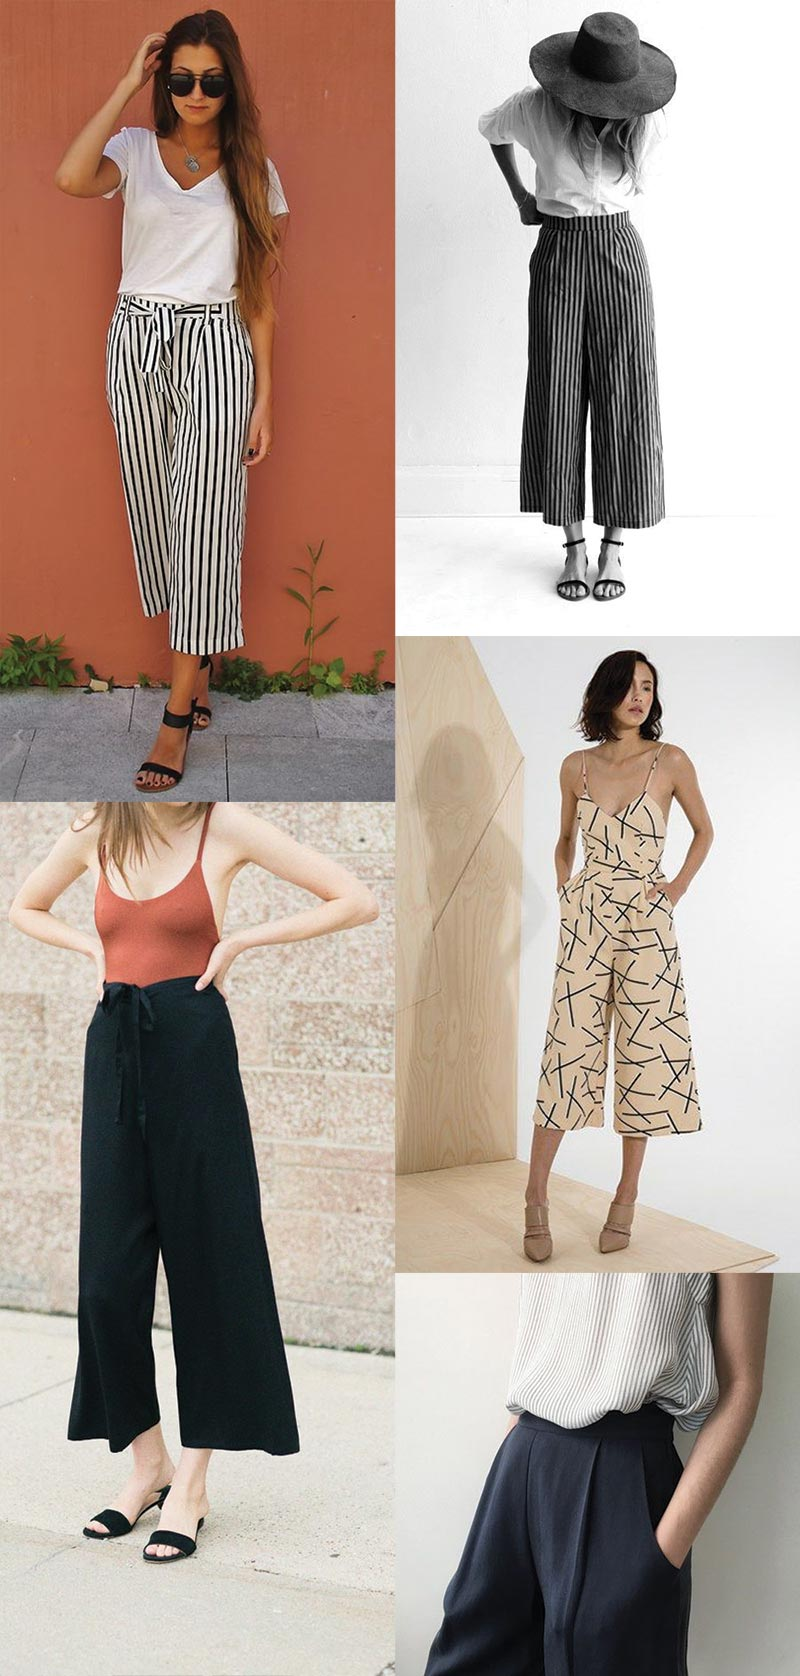 sewing_inspiration_7